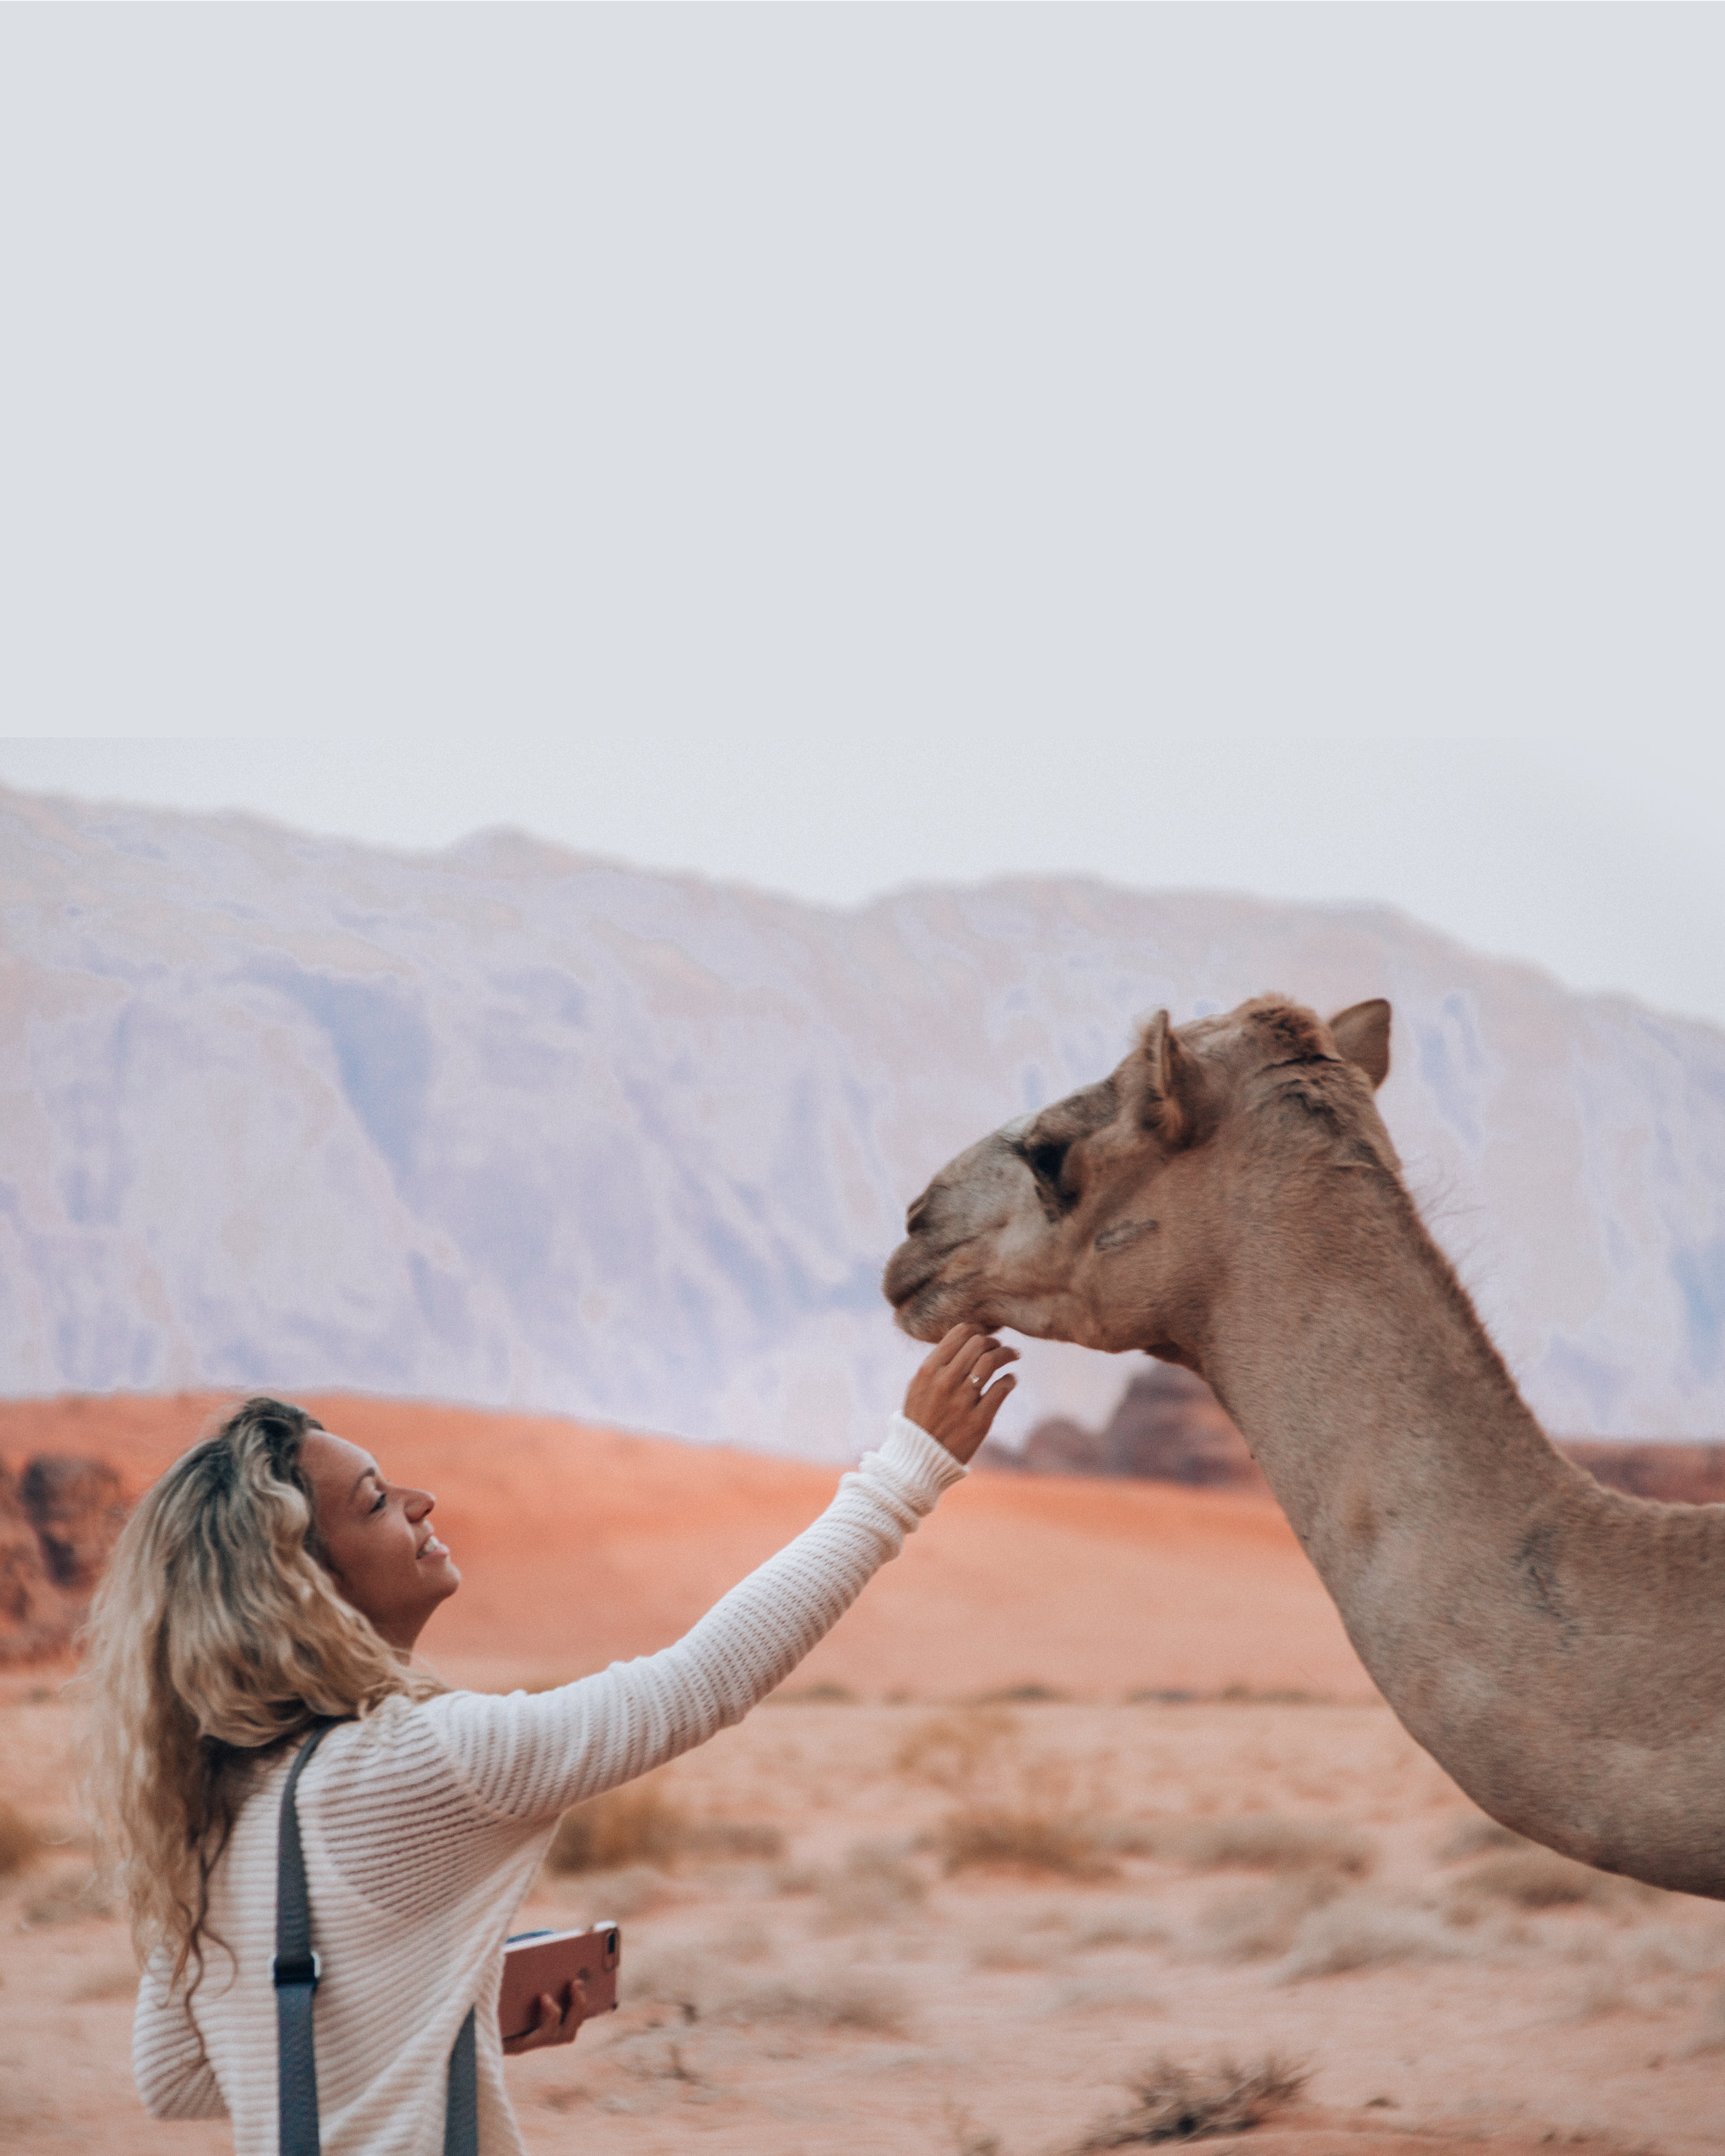 Escape to Wadi Rum - sleep under the stars in the middle of Mars